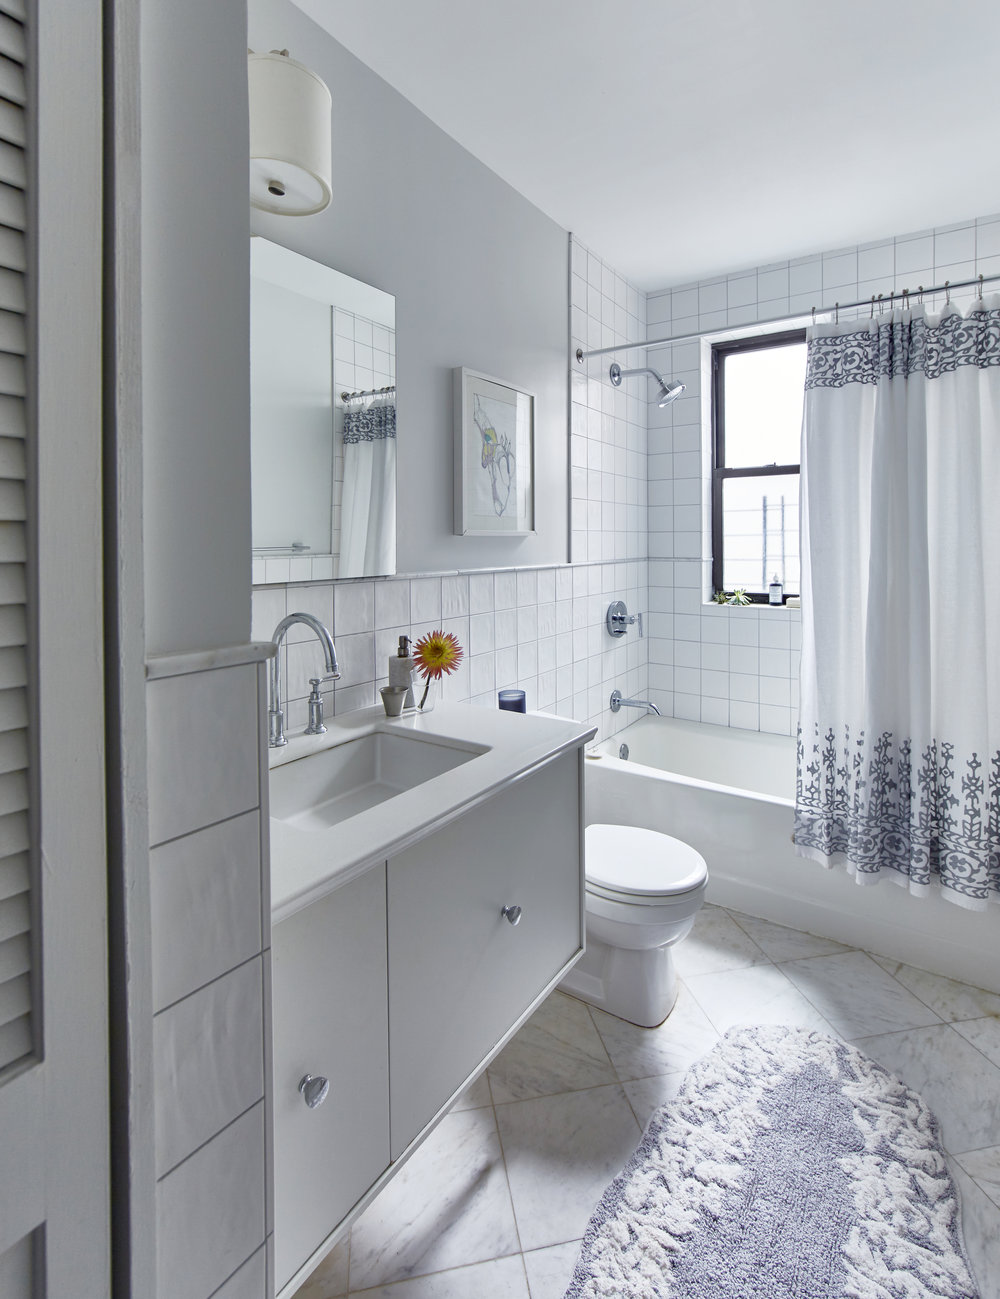 Modern Vintage Bathroom White Tile Brooklyn Park Slope JMorris Interior Design